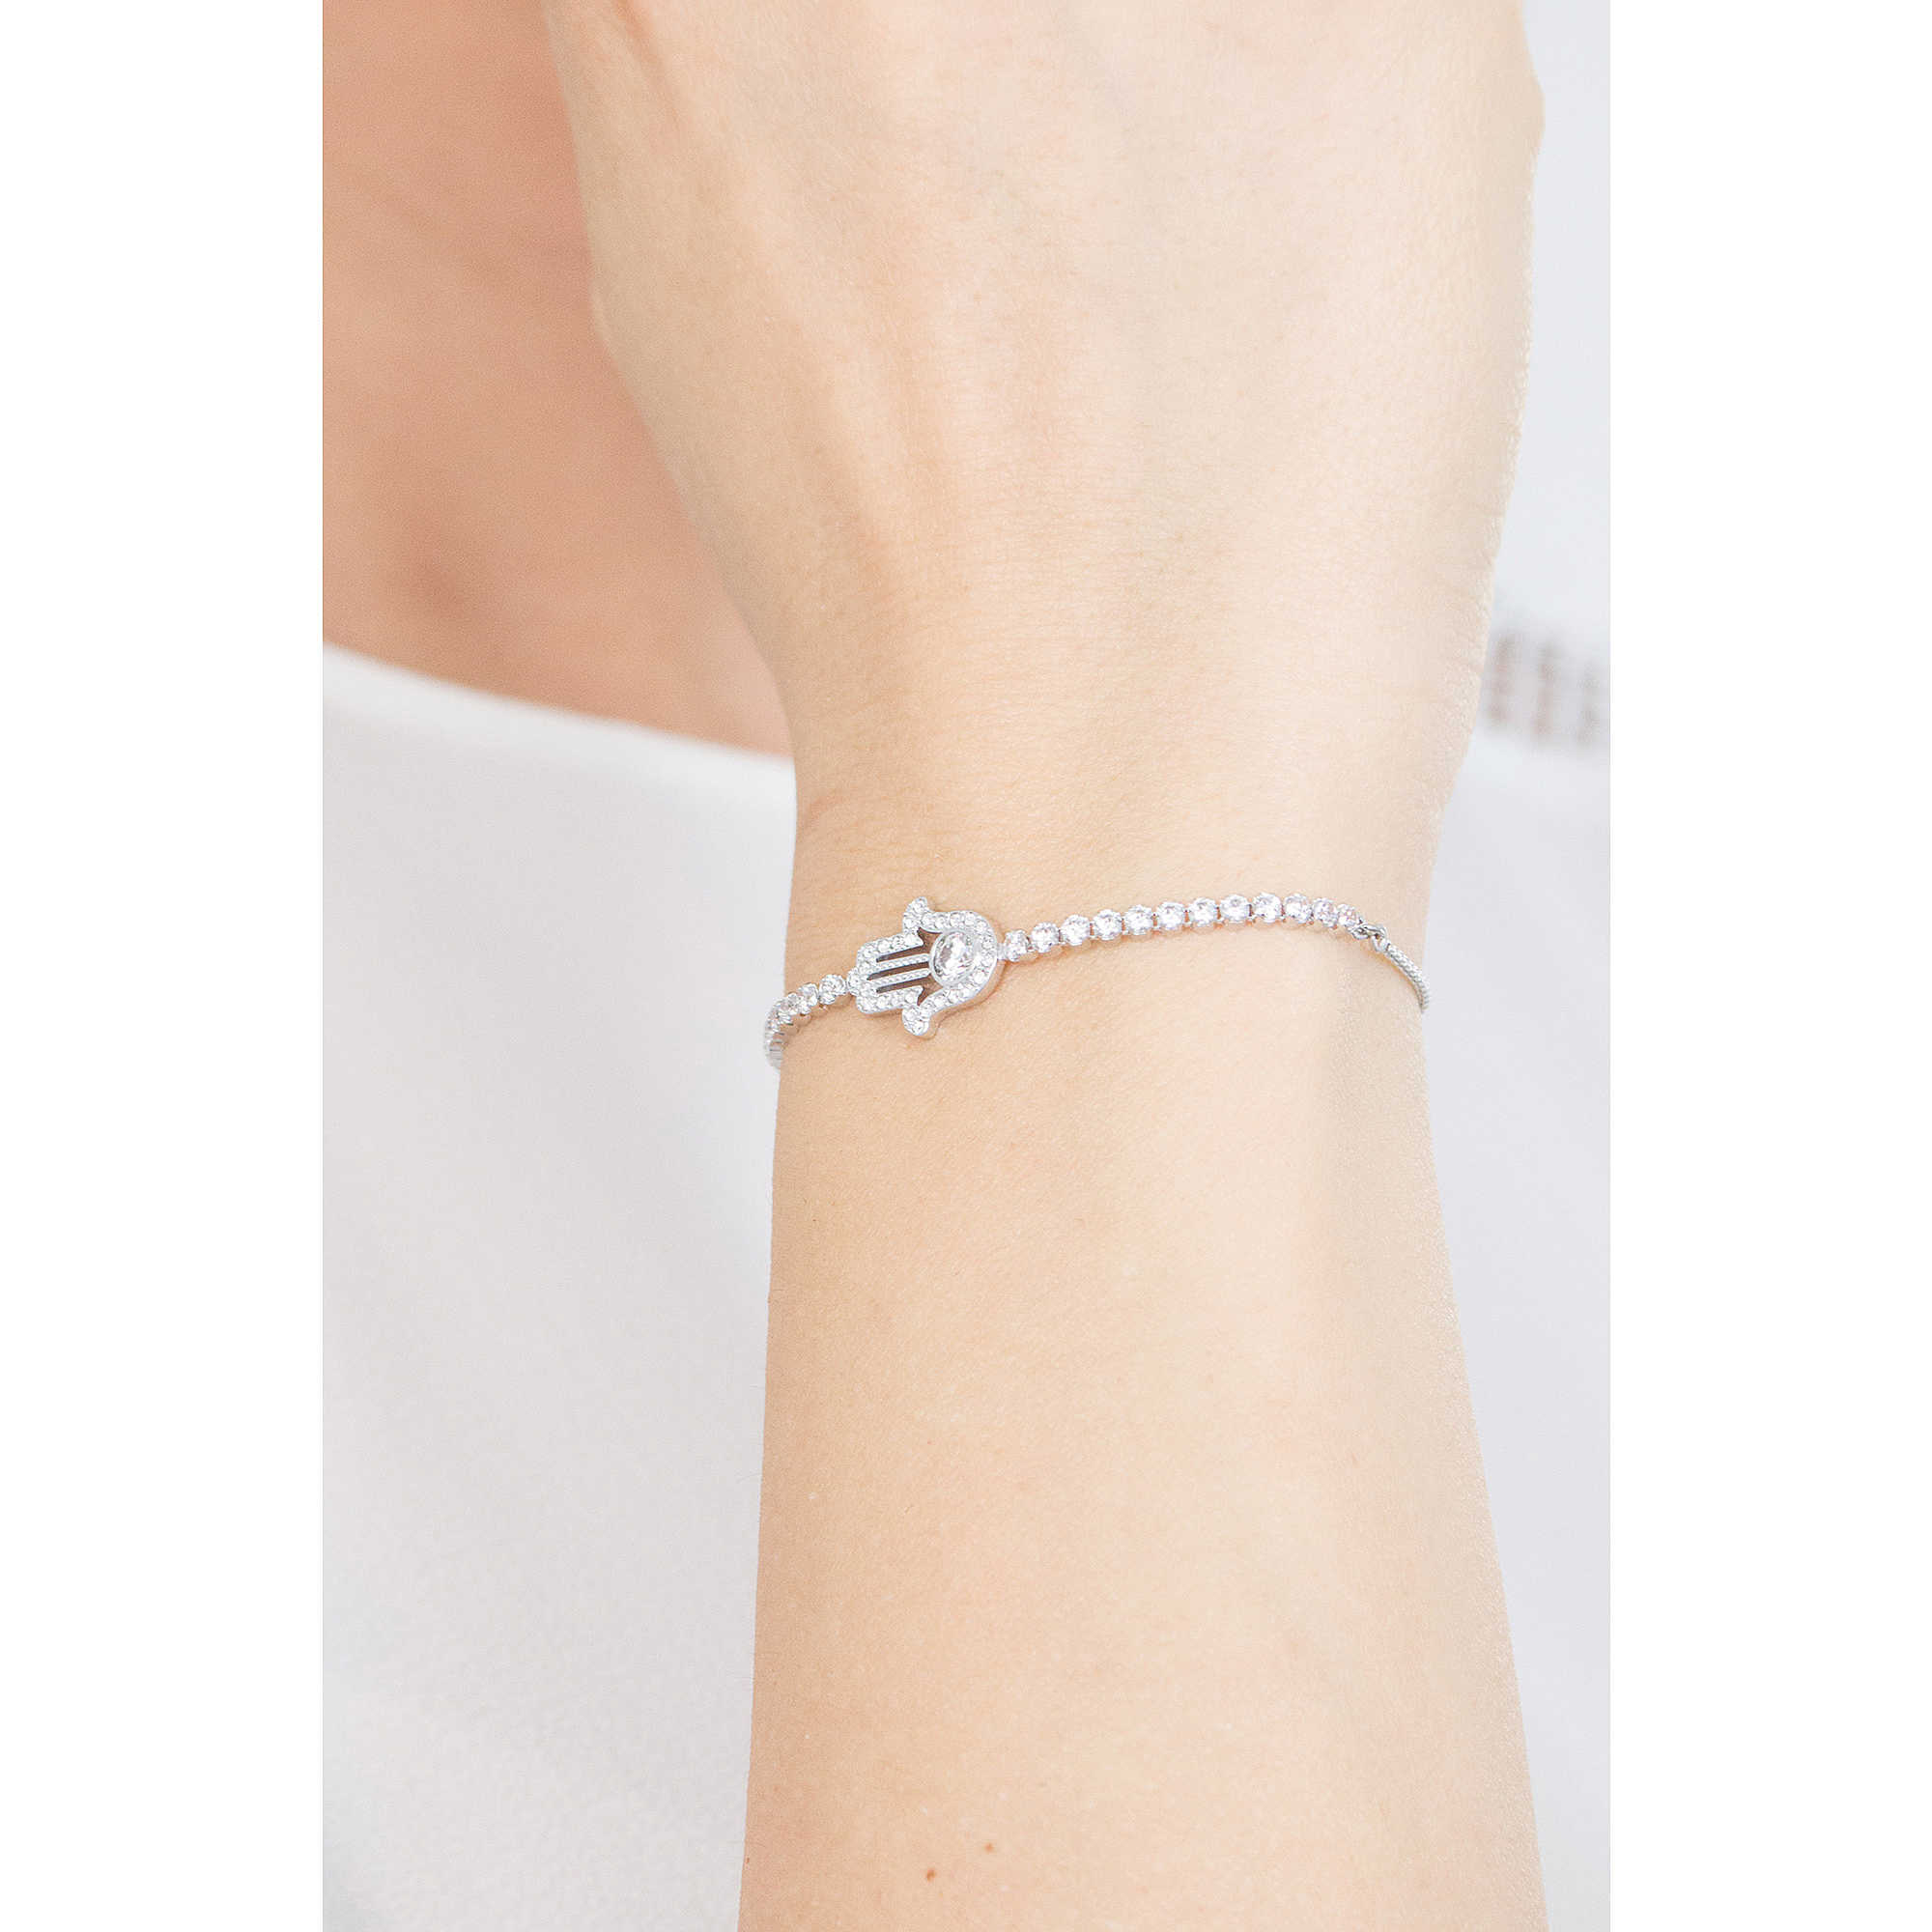 Swarovski Bracelets Hamsa Hand Woman 5397699 Photo Wearing Zoom